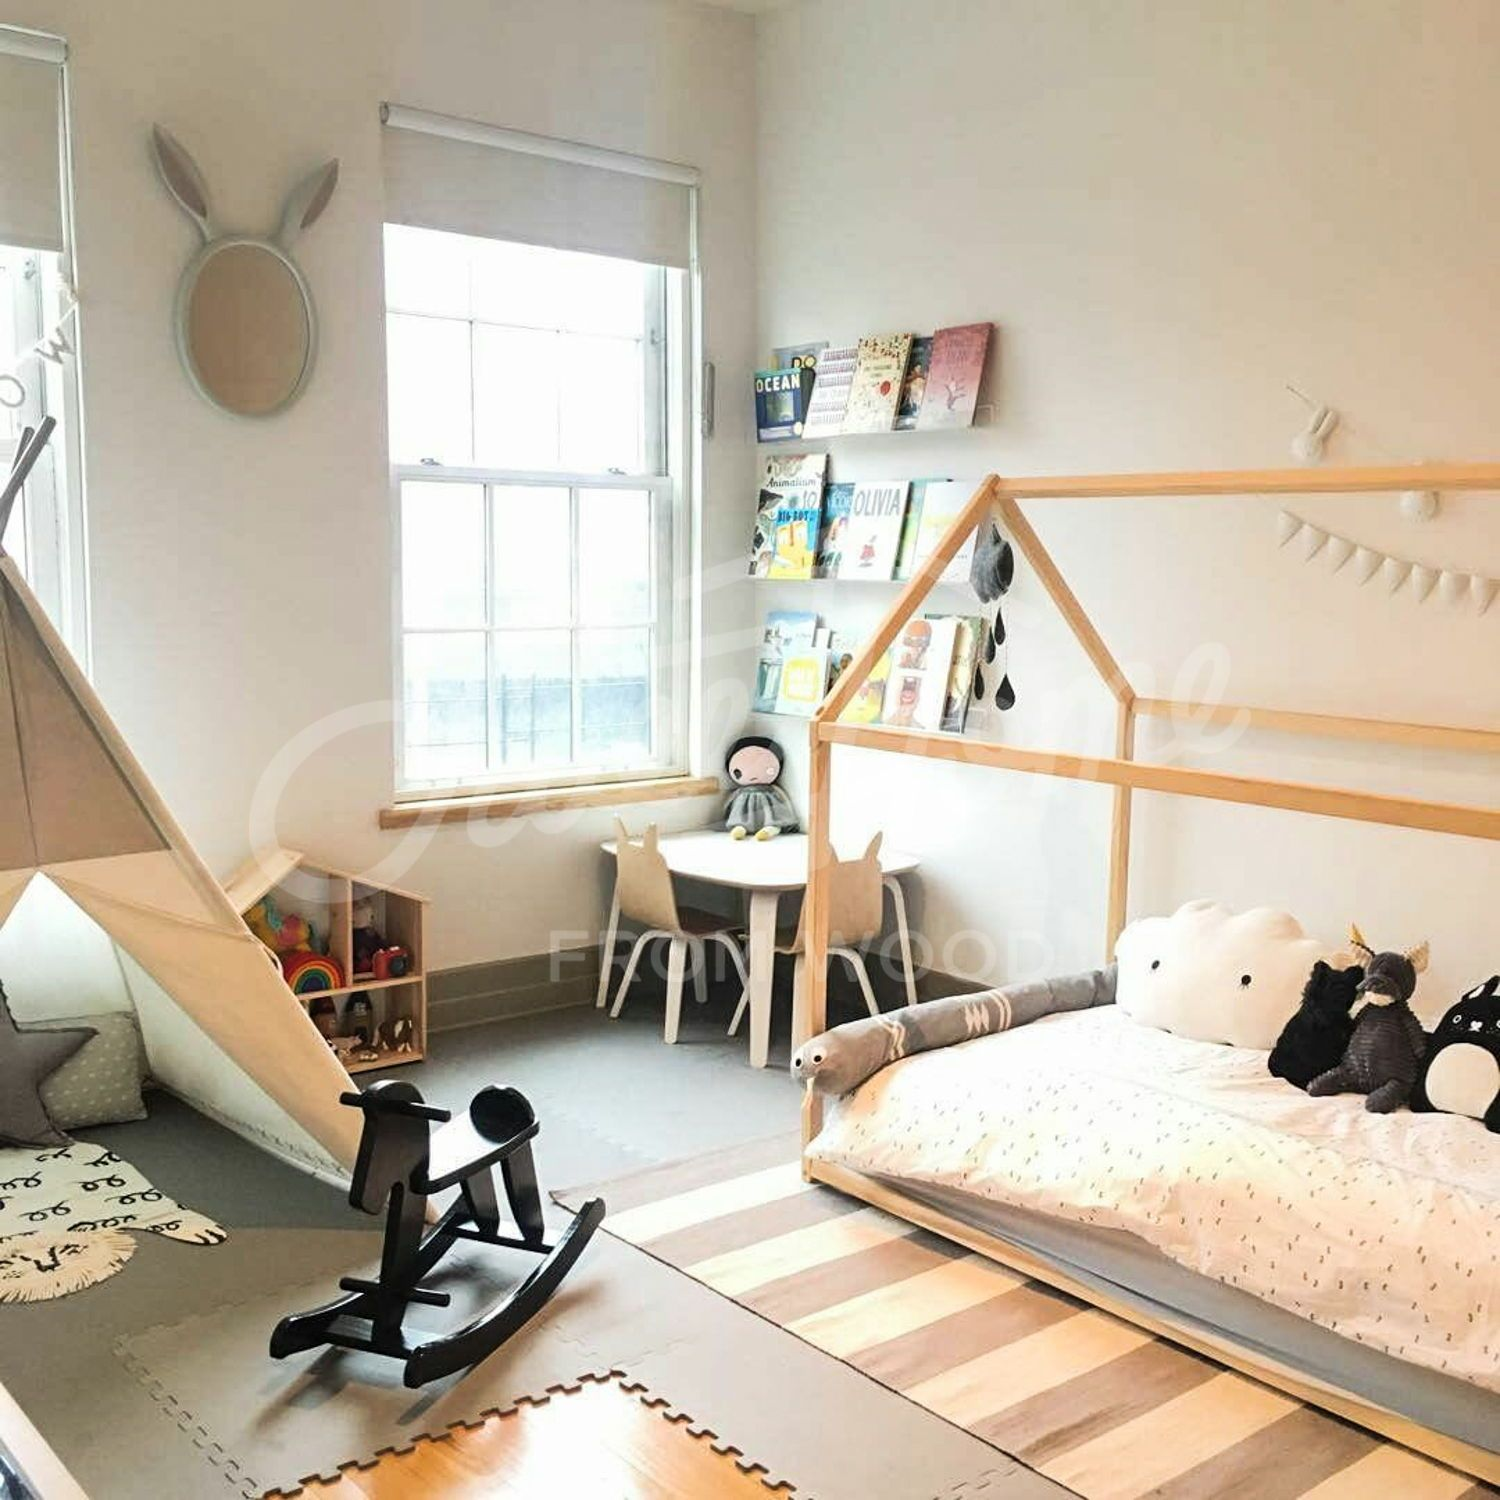 Toddler Bed House Shaped Bed Loft Bed Nursery Wood House Bed Home Montessori Toy Frame Bed Original Bed Home Bed Developing Toy Slats Kids Bed Frames Boys Bedroom Ideas 8 Year